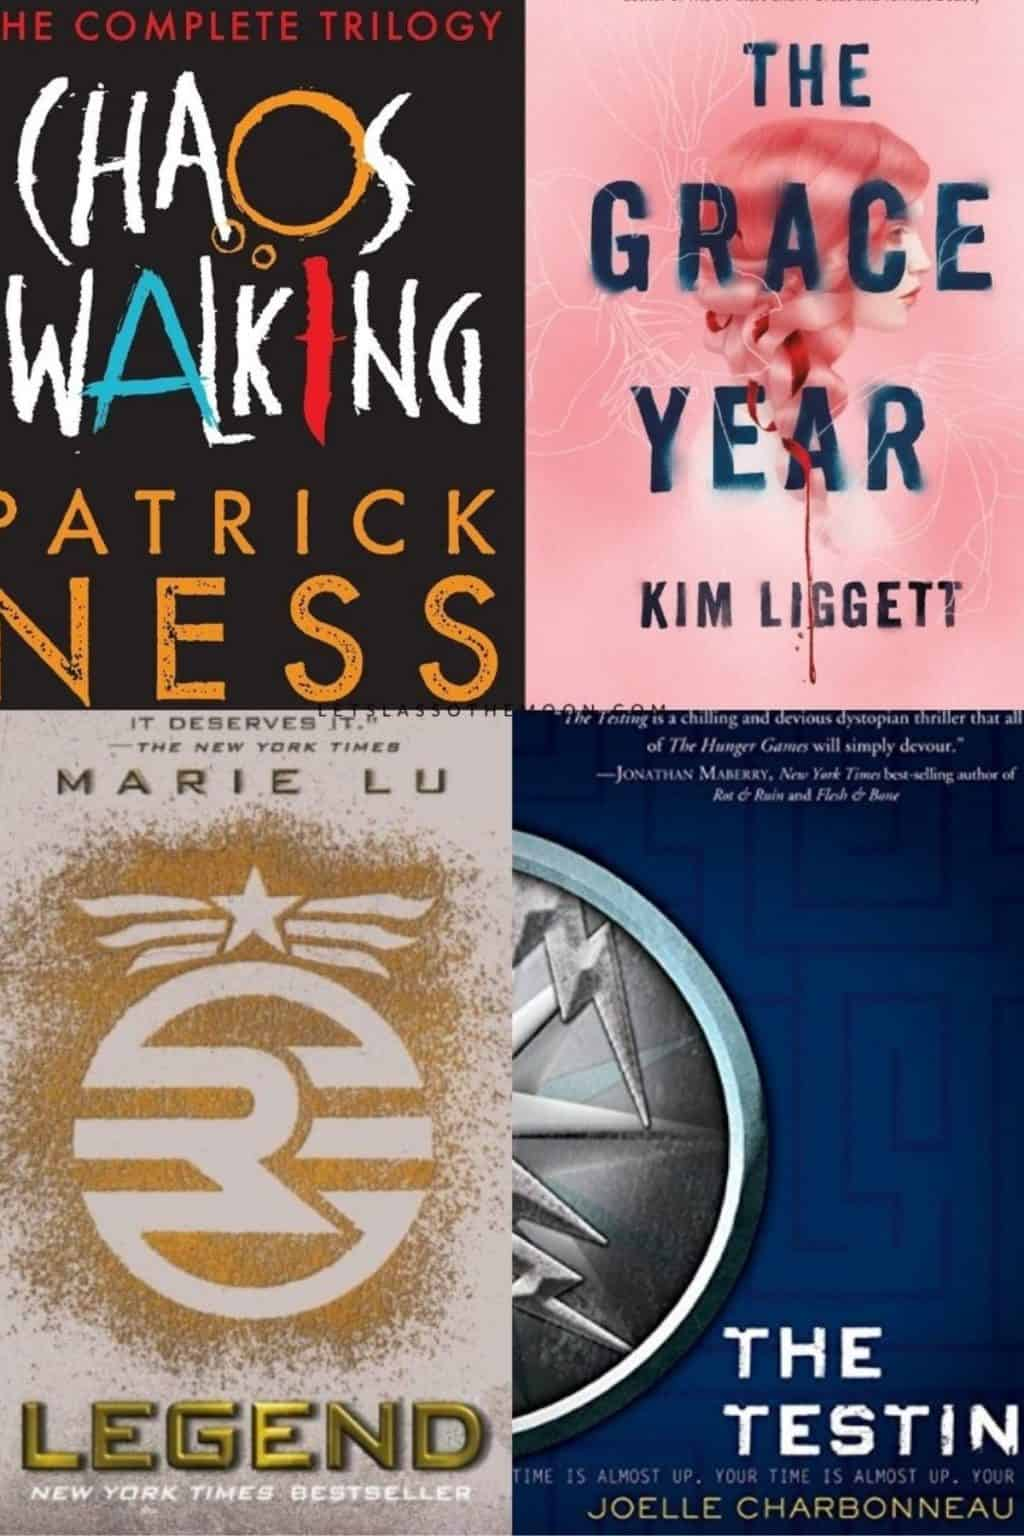 The covers of four YA Dystopian Novels including Chaos Walking, The Grace Year, Legend, and The Testing.